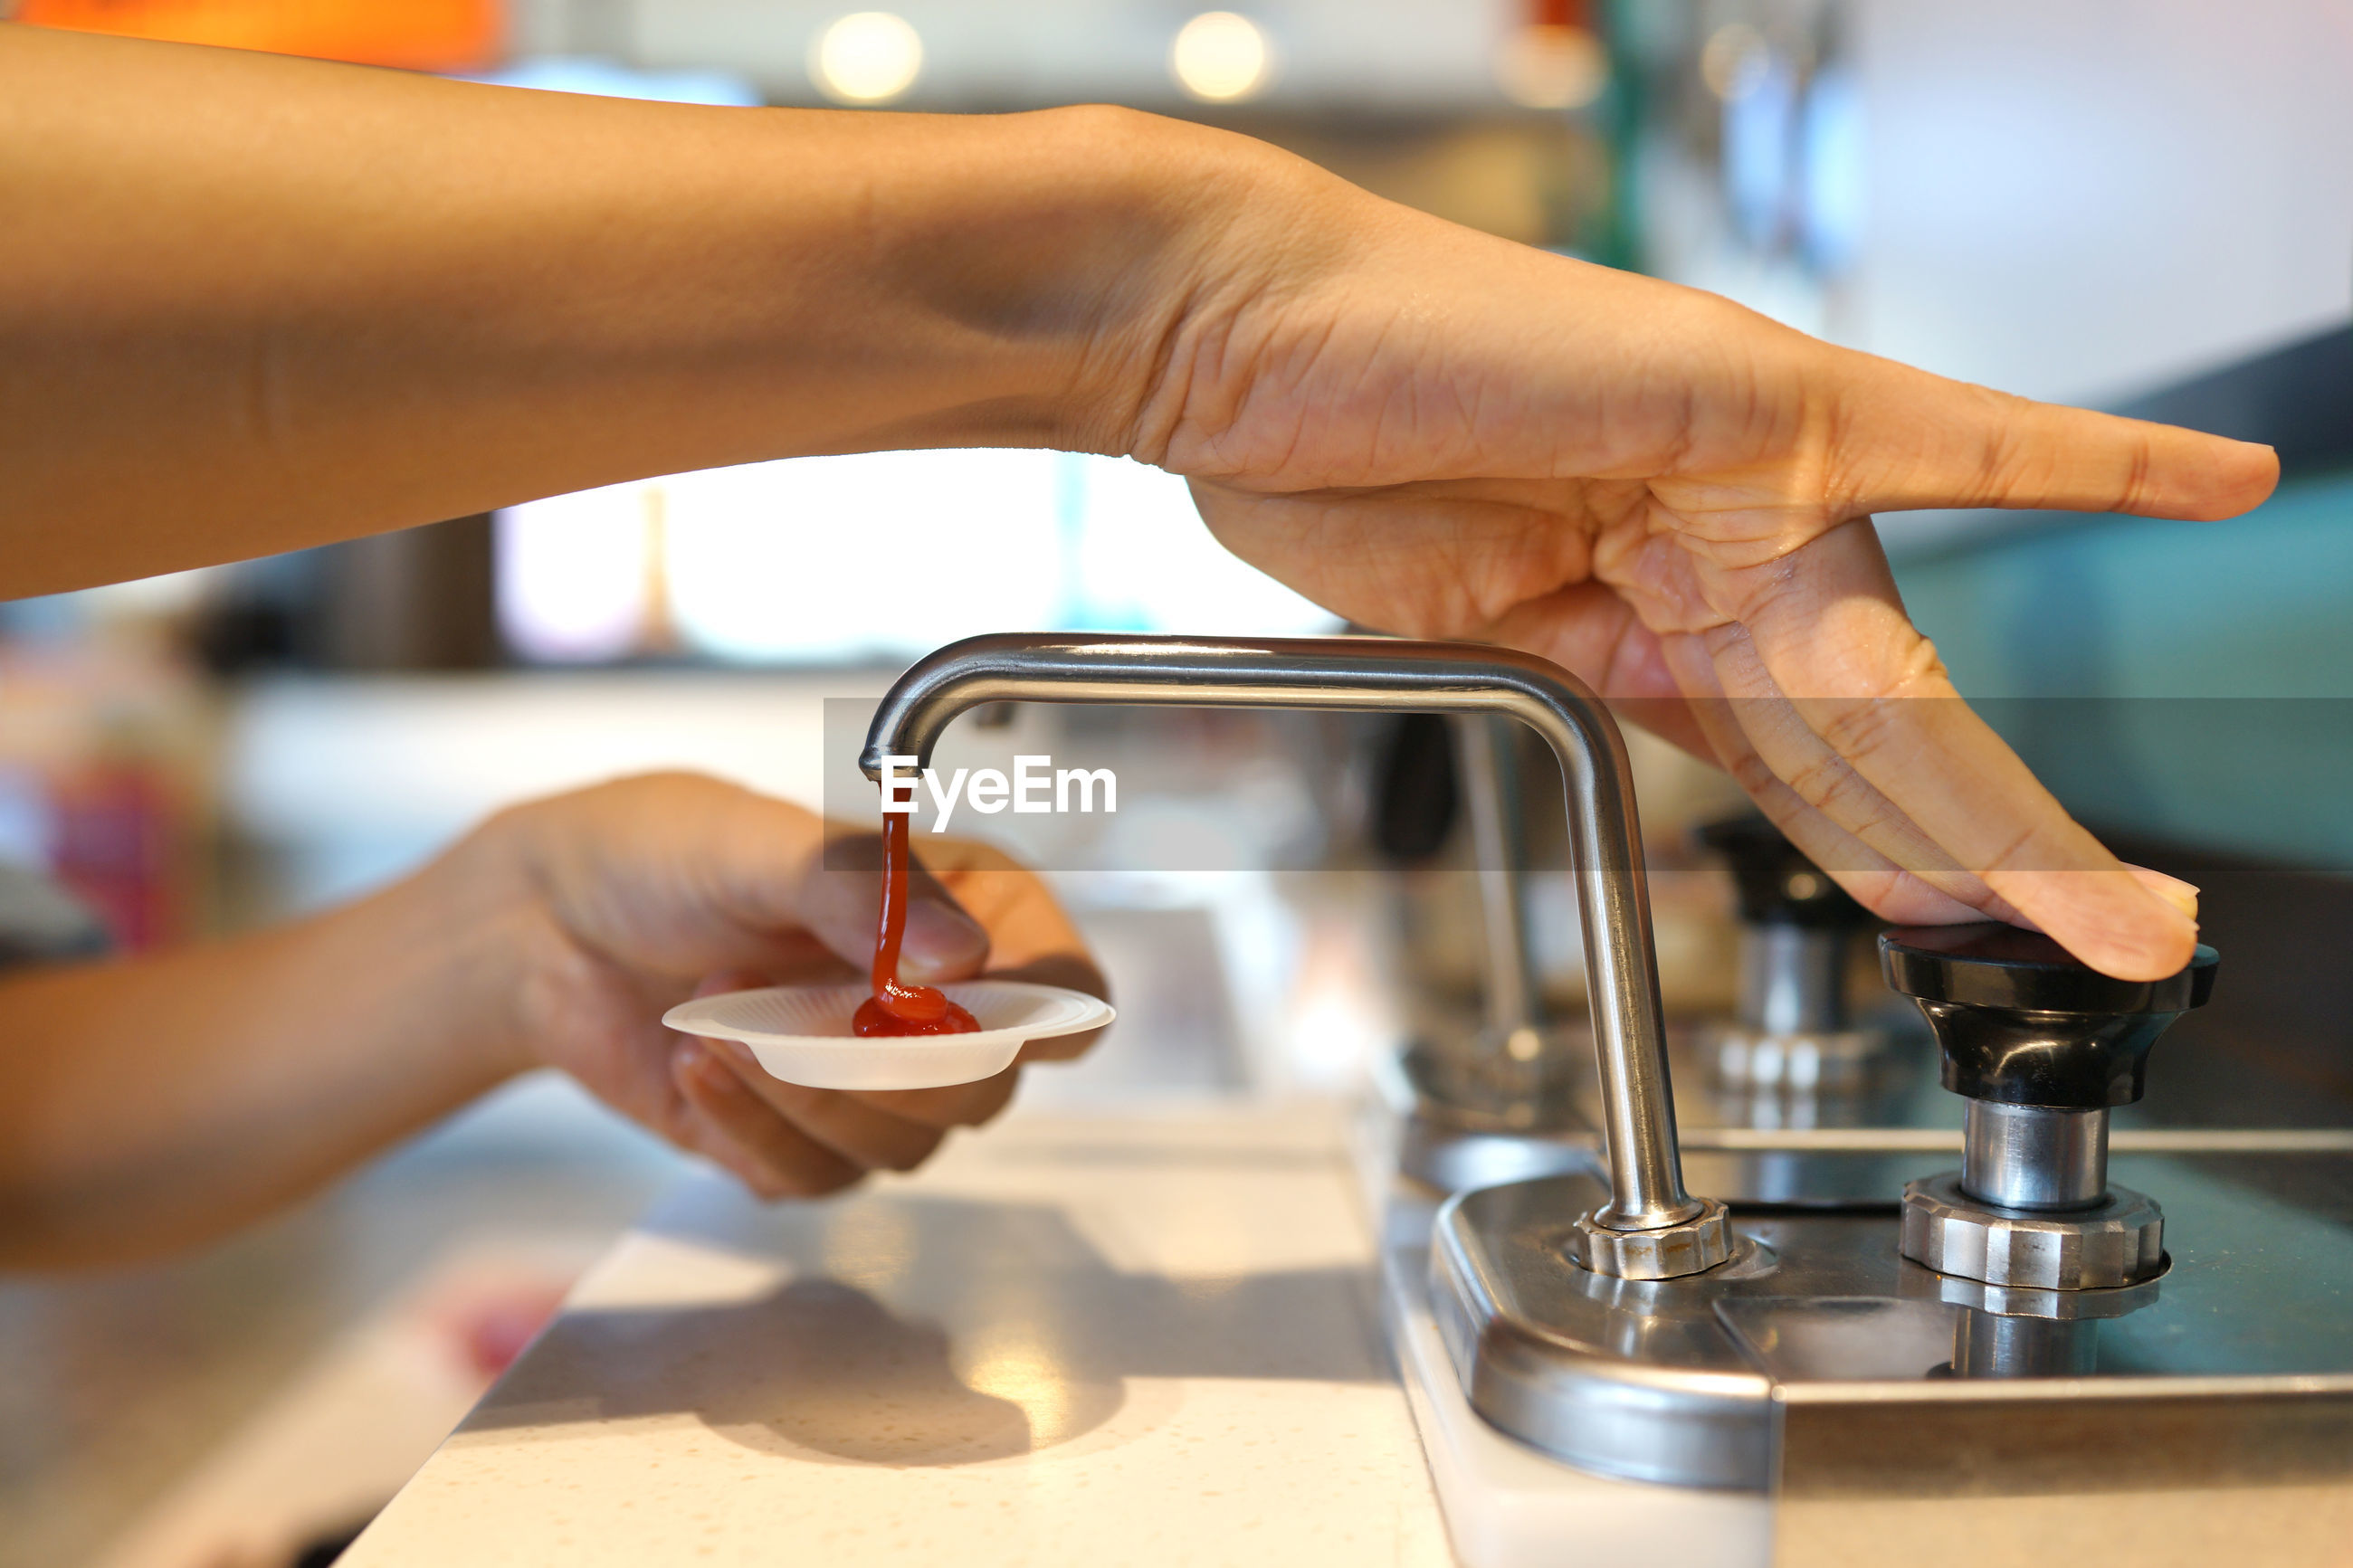 Cropped image of person pouring tomato sauce in cup